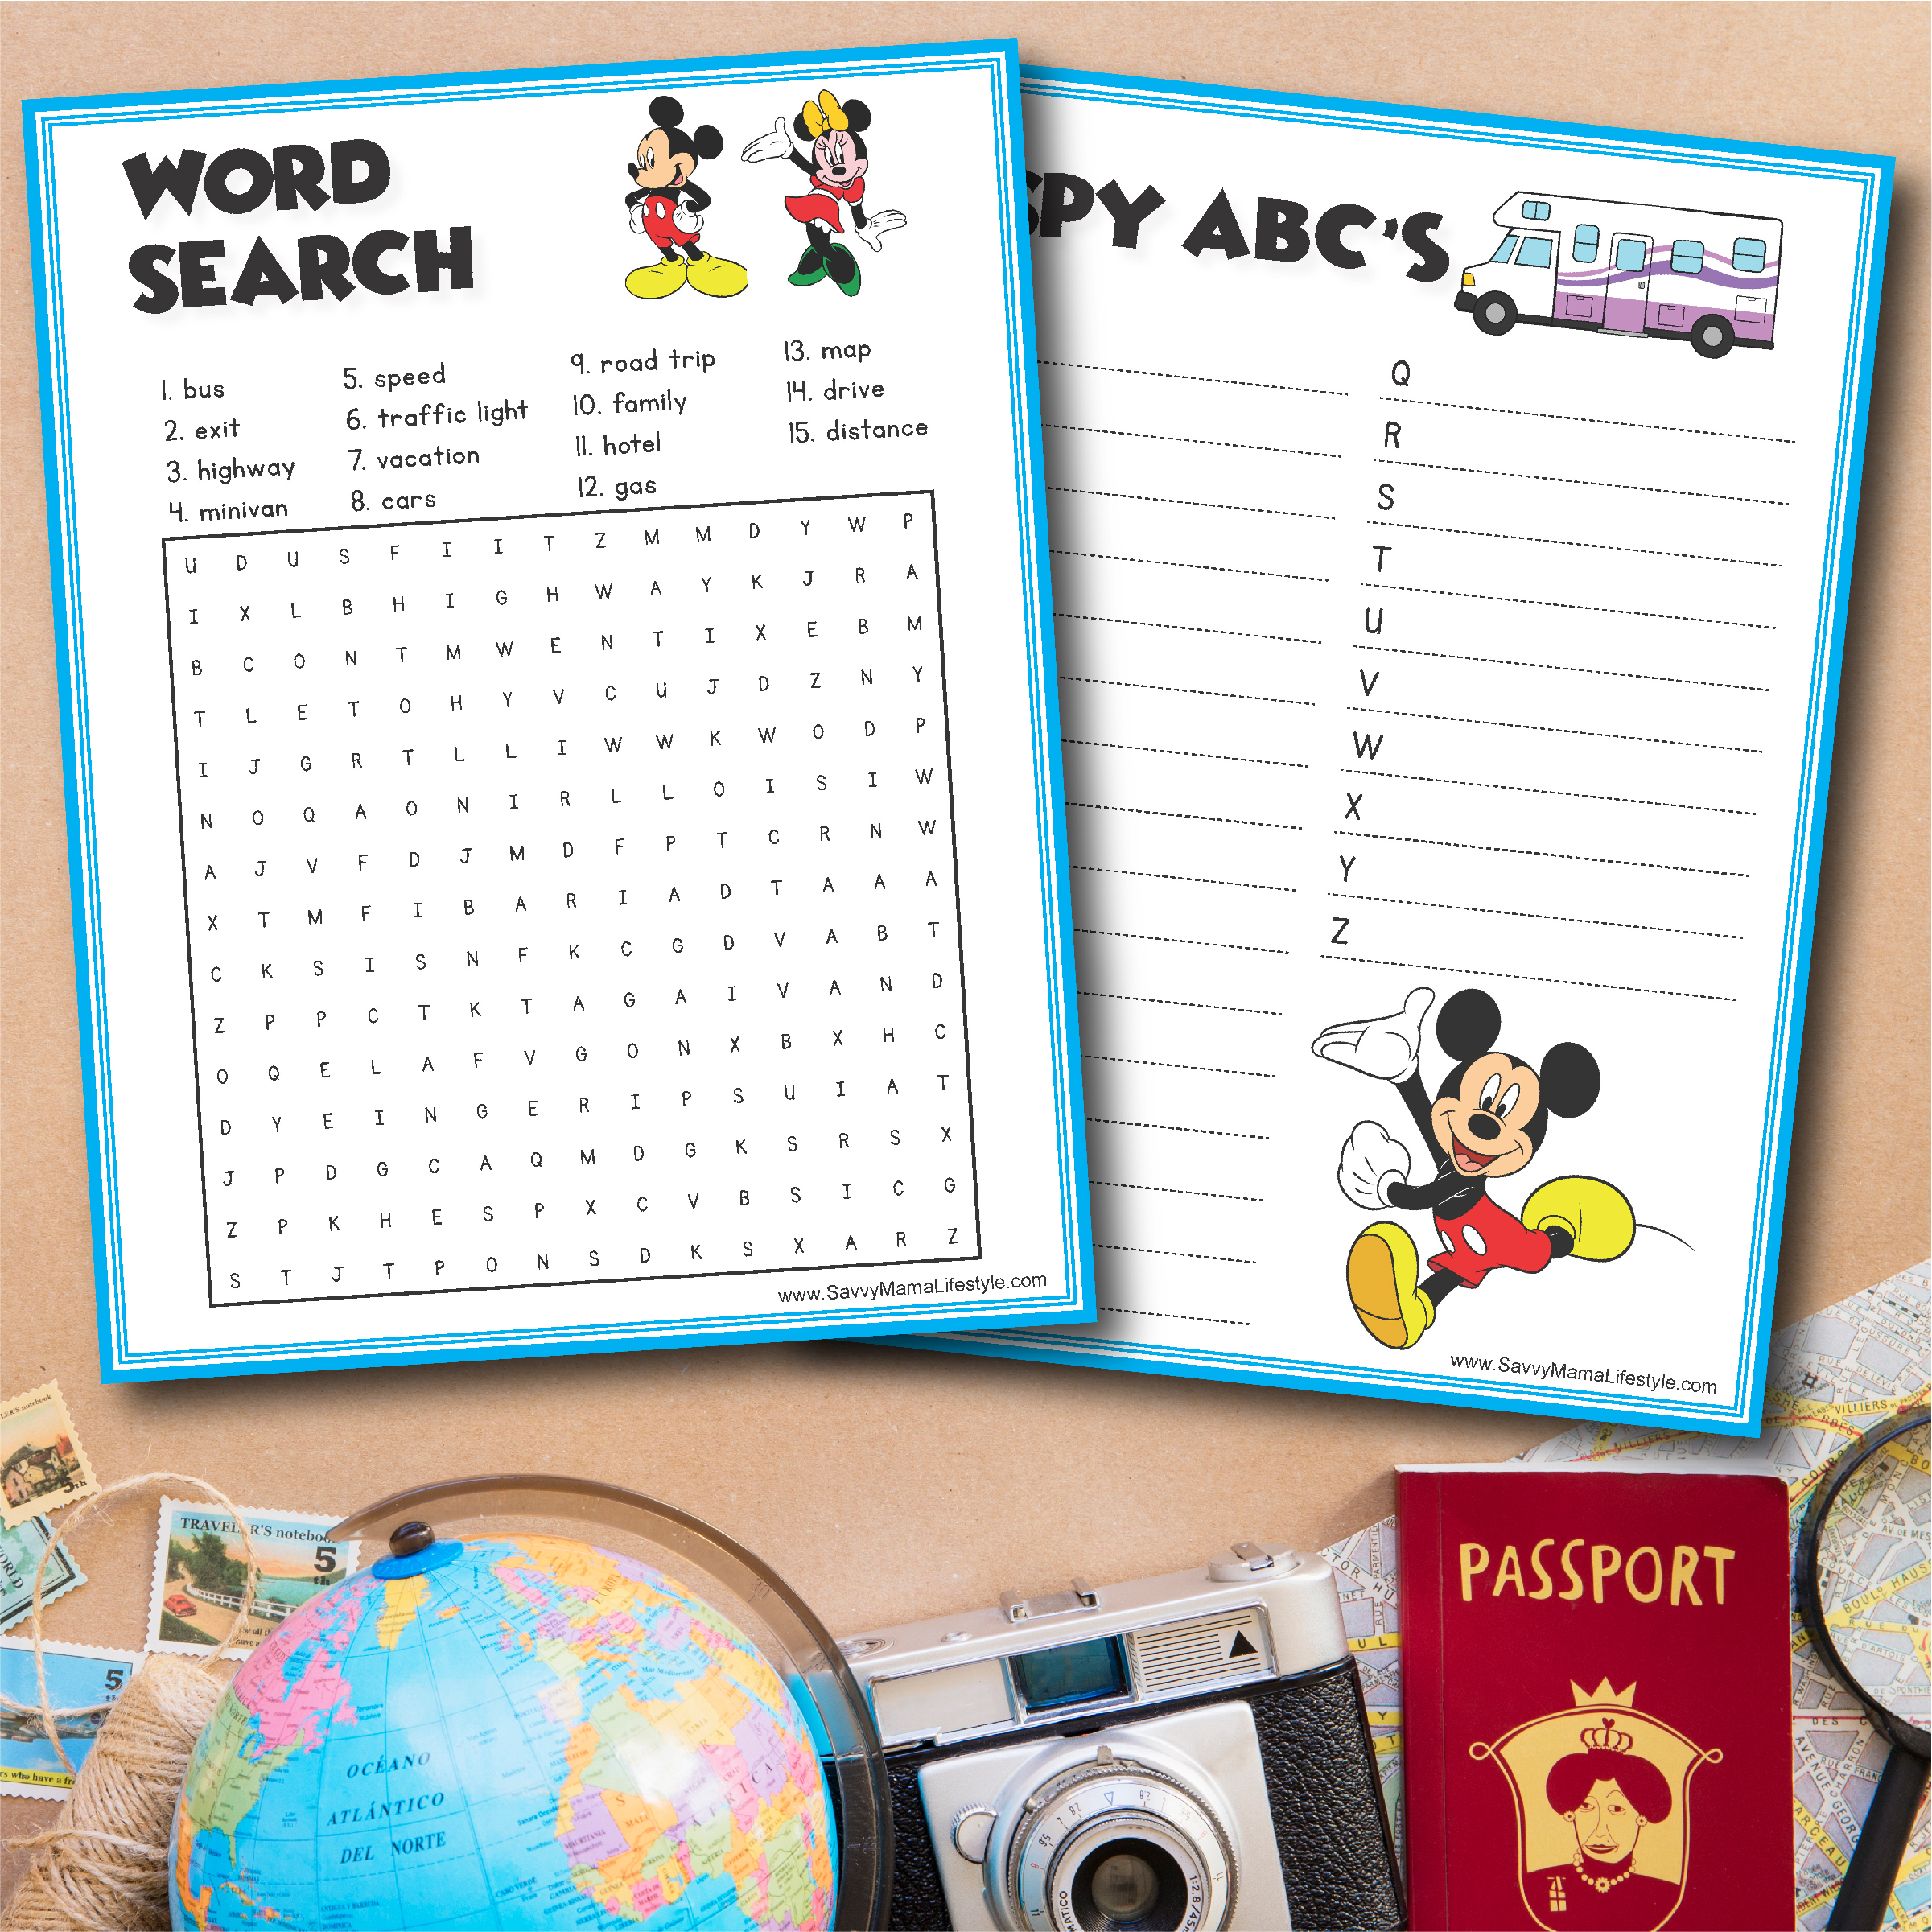 Disney Road Trip Games, Free Printable Disney Road Trip Games, Disney Road Trip Activities